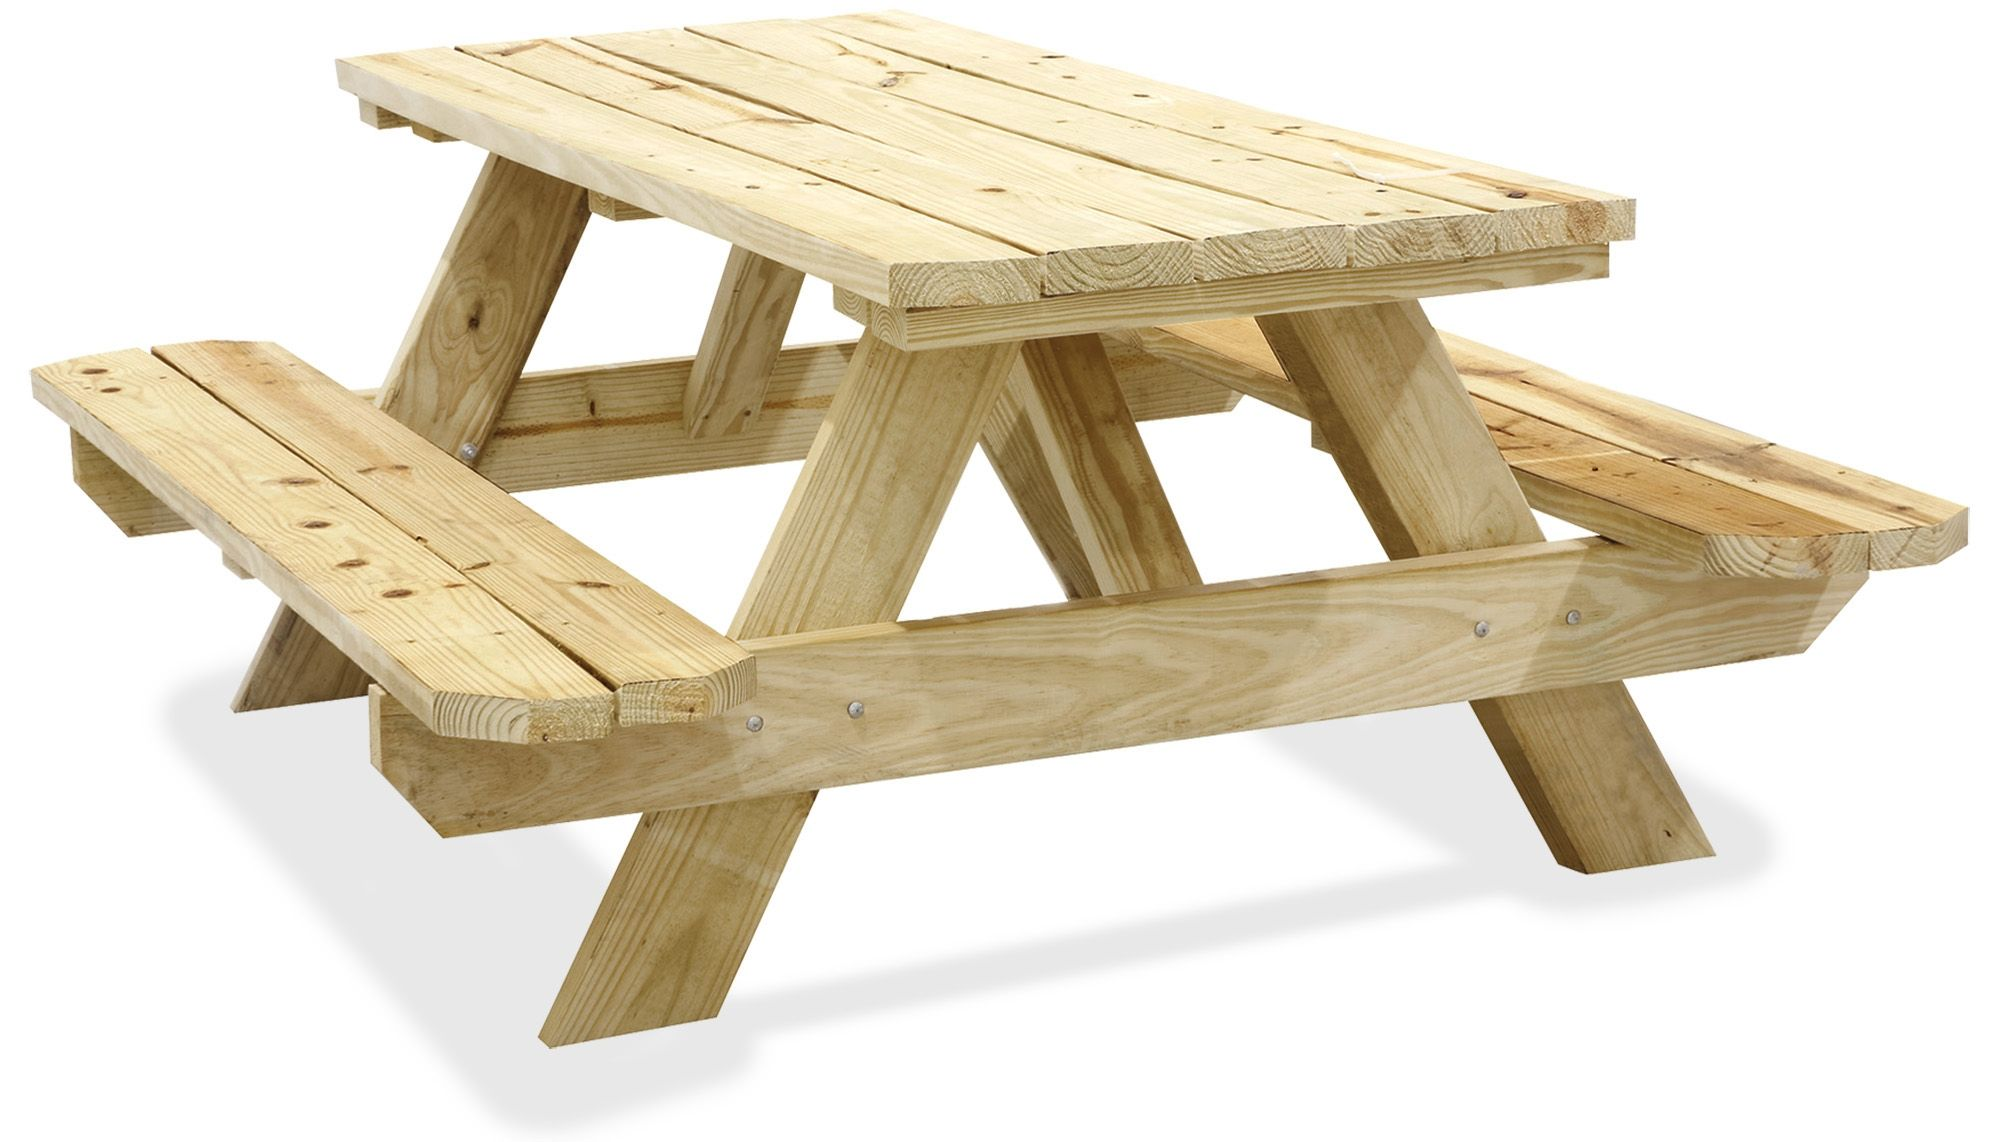 Wooden Picnic Tables In Stock ULINE Coveting Pinterest - Picnic table supplies